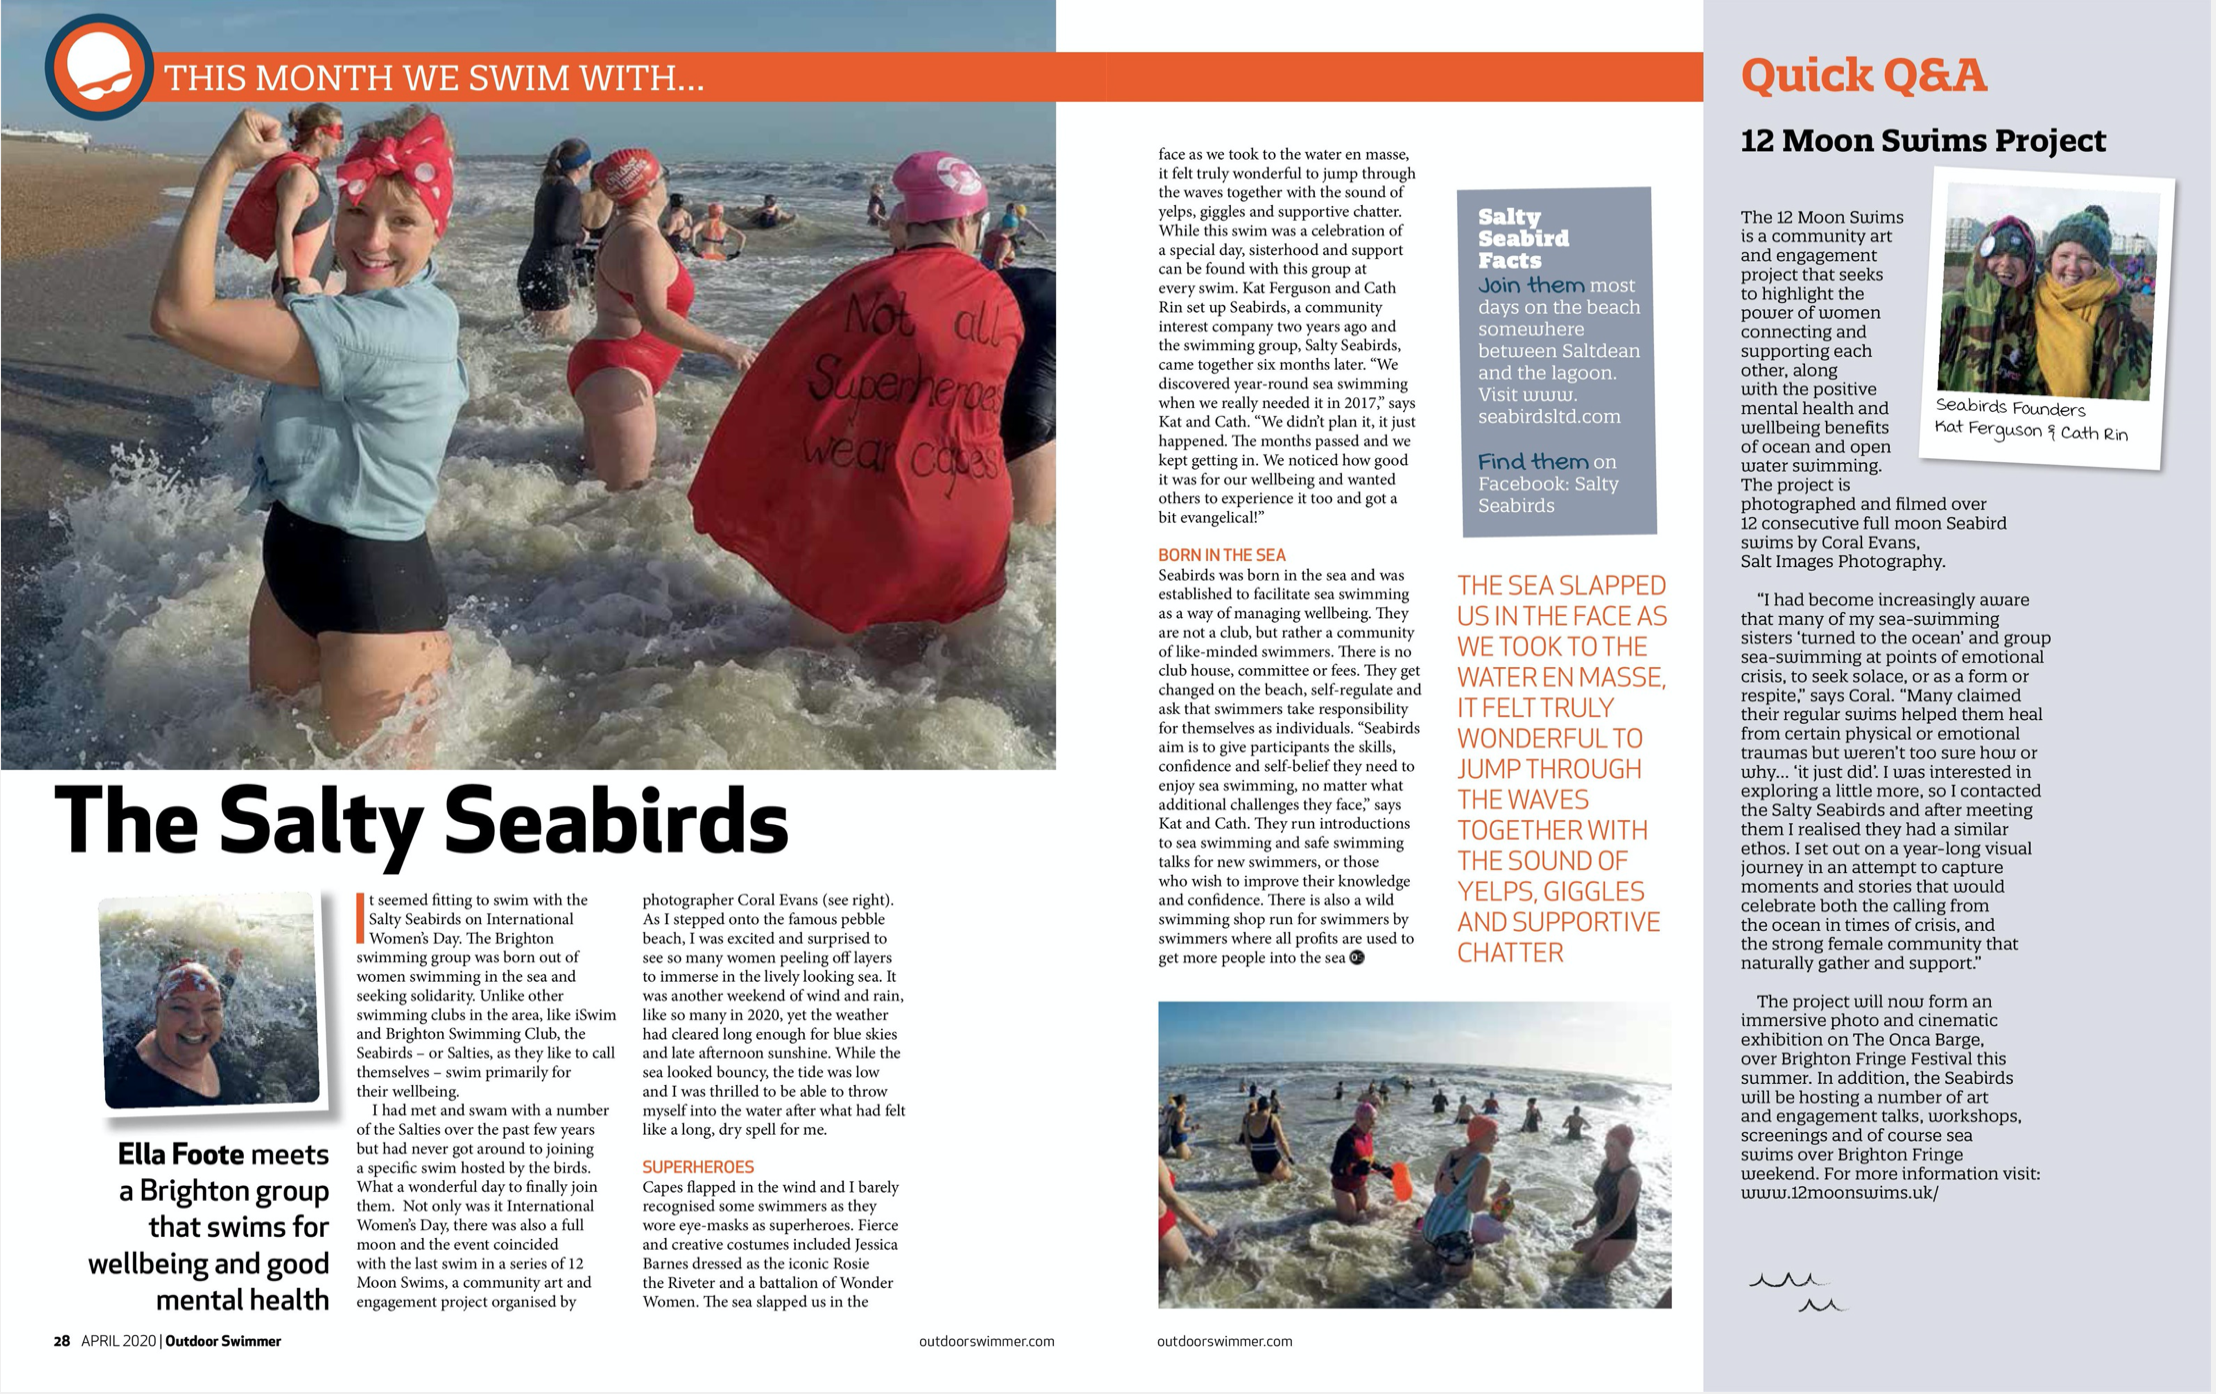 Outdoor Swimmer Magazine - April 2020